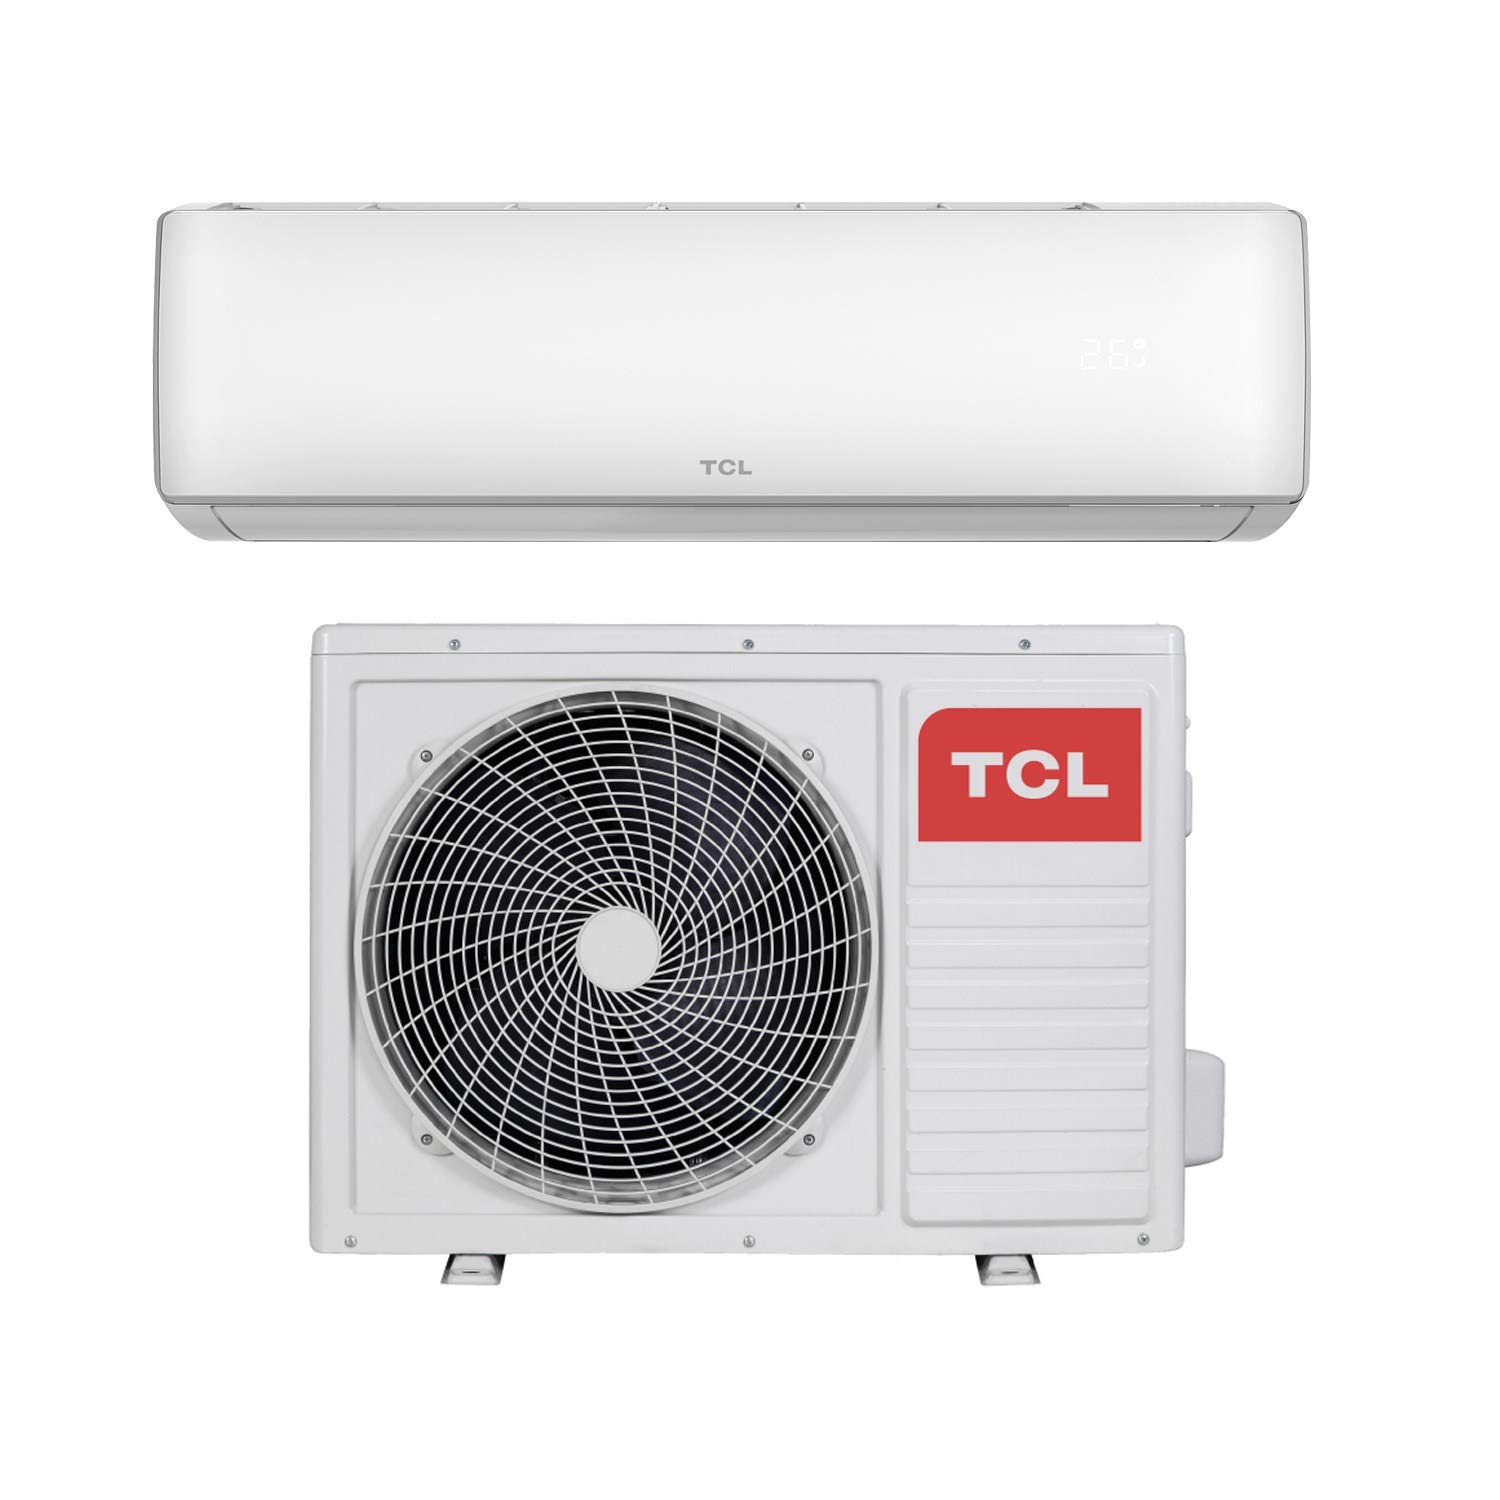 Wall Mounted Air Conditioning Unit with 5 years warranty 12000 BTU Smart WiFi A+ easy-fit DC Inverter Wall Split Air Conditioner with 5 meters pipe kit